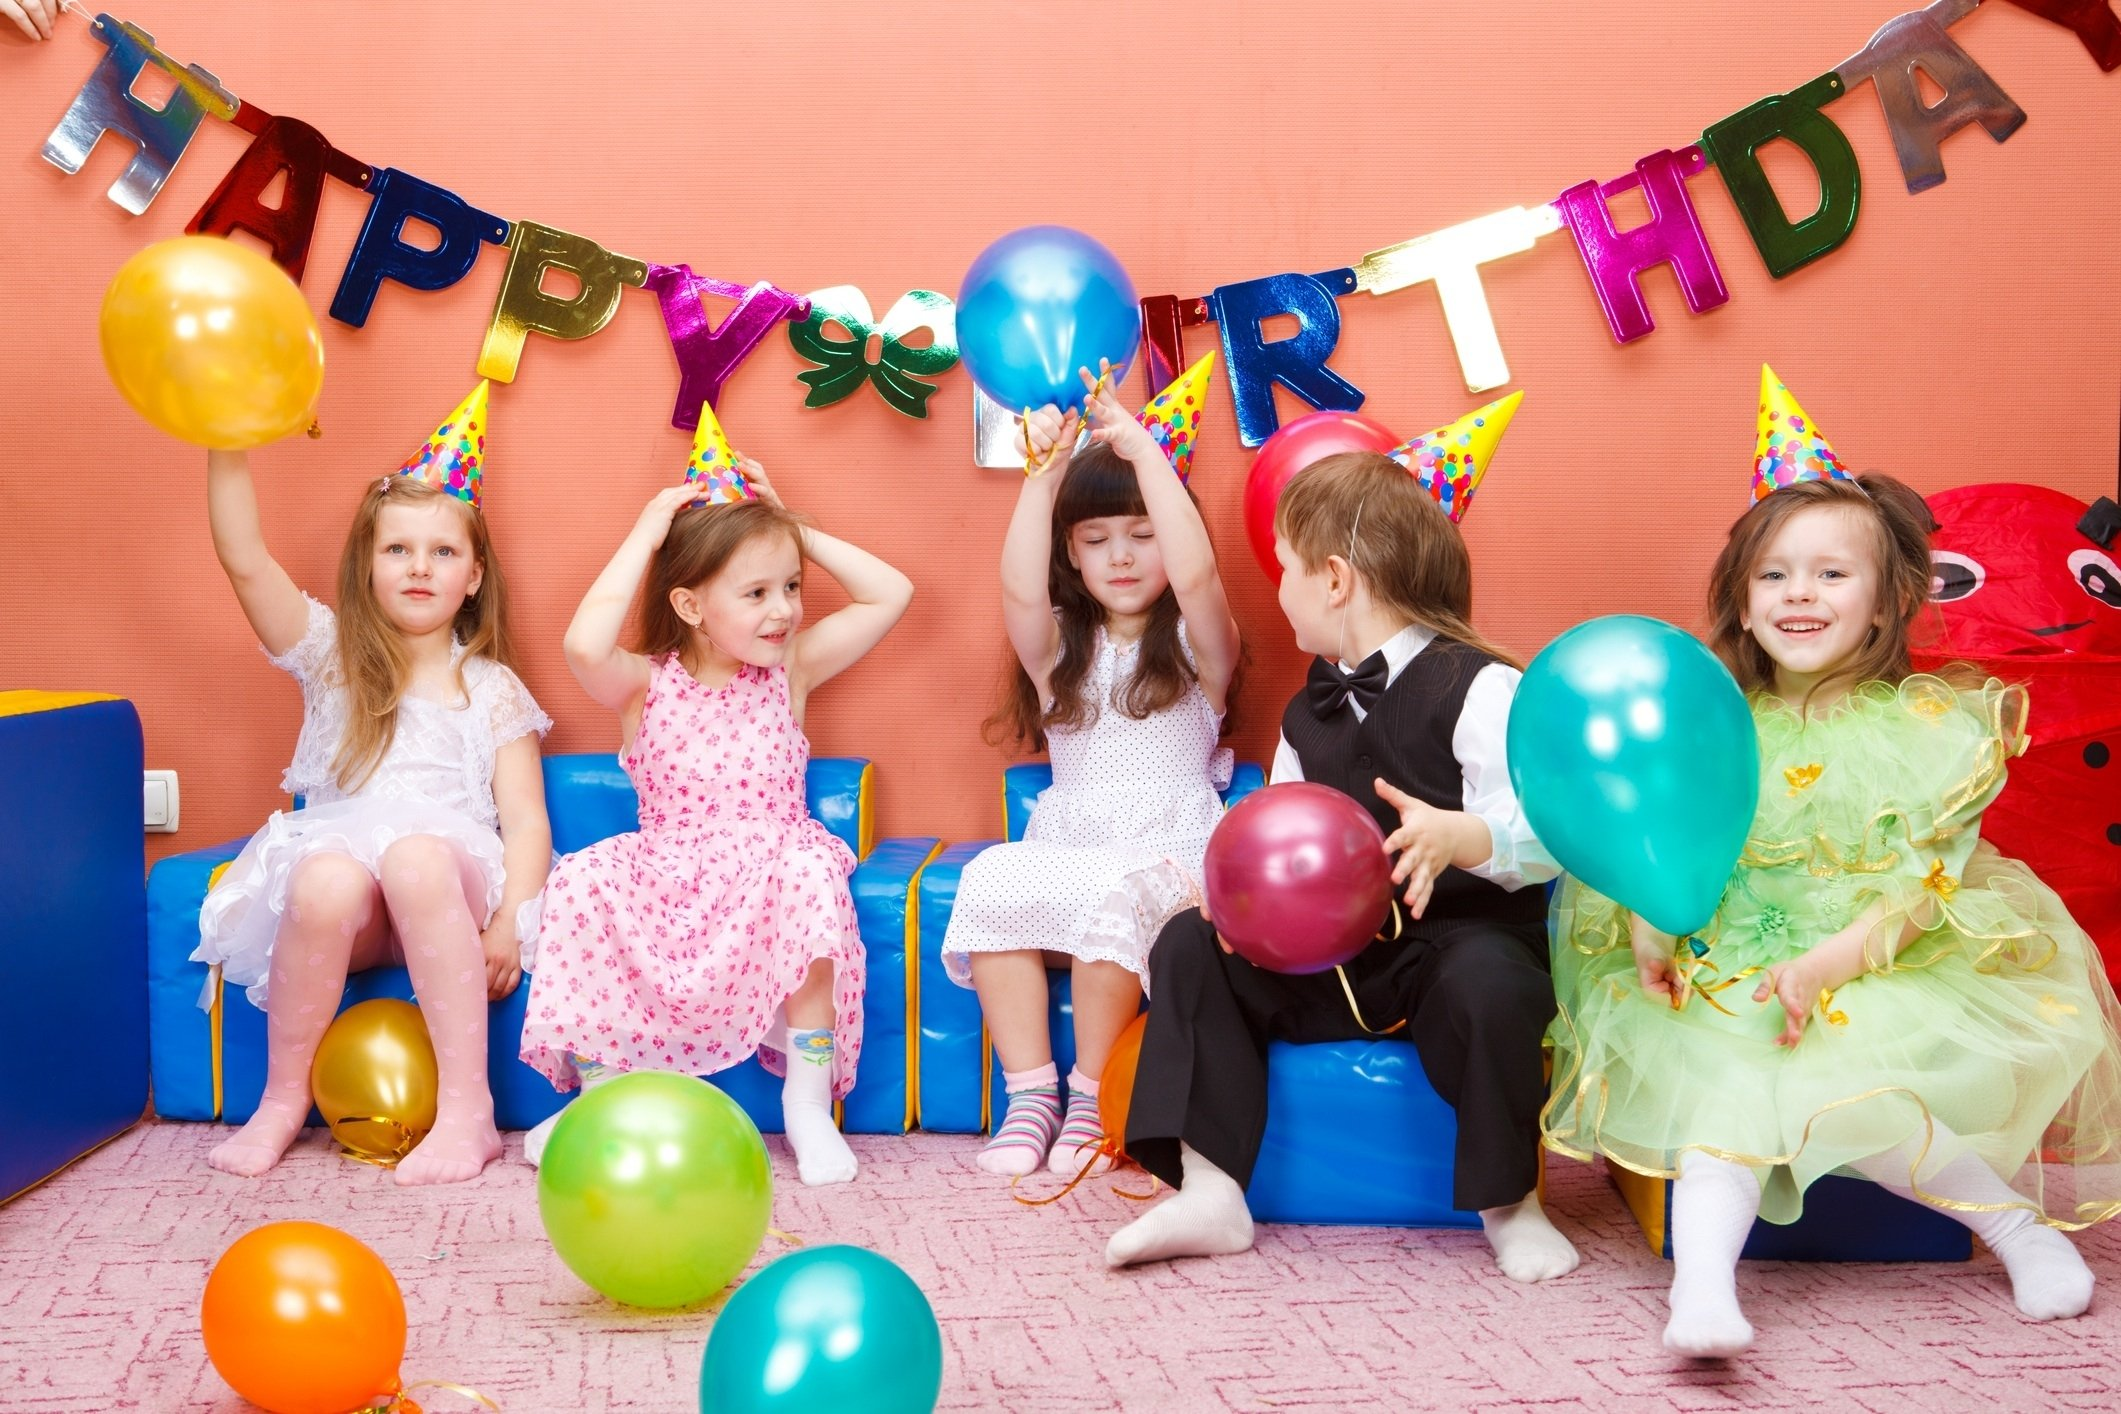 10 Fabulous 12 Year Old Birthday Party Ideas For Girls 45 awesome 11 12 year old birthday party ideas birthday inspire 21 2020